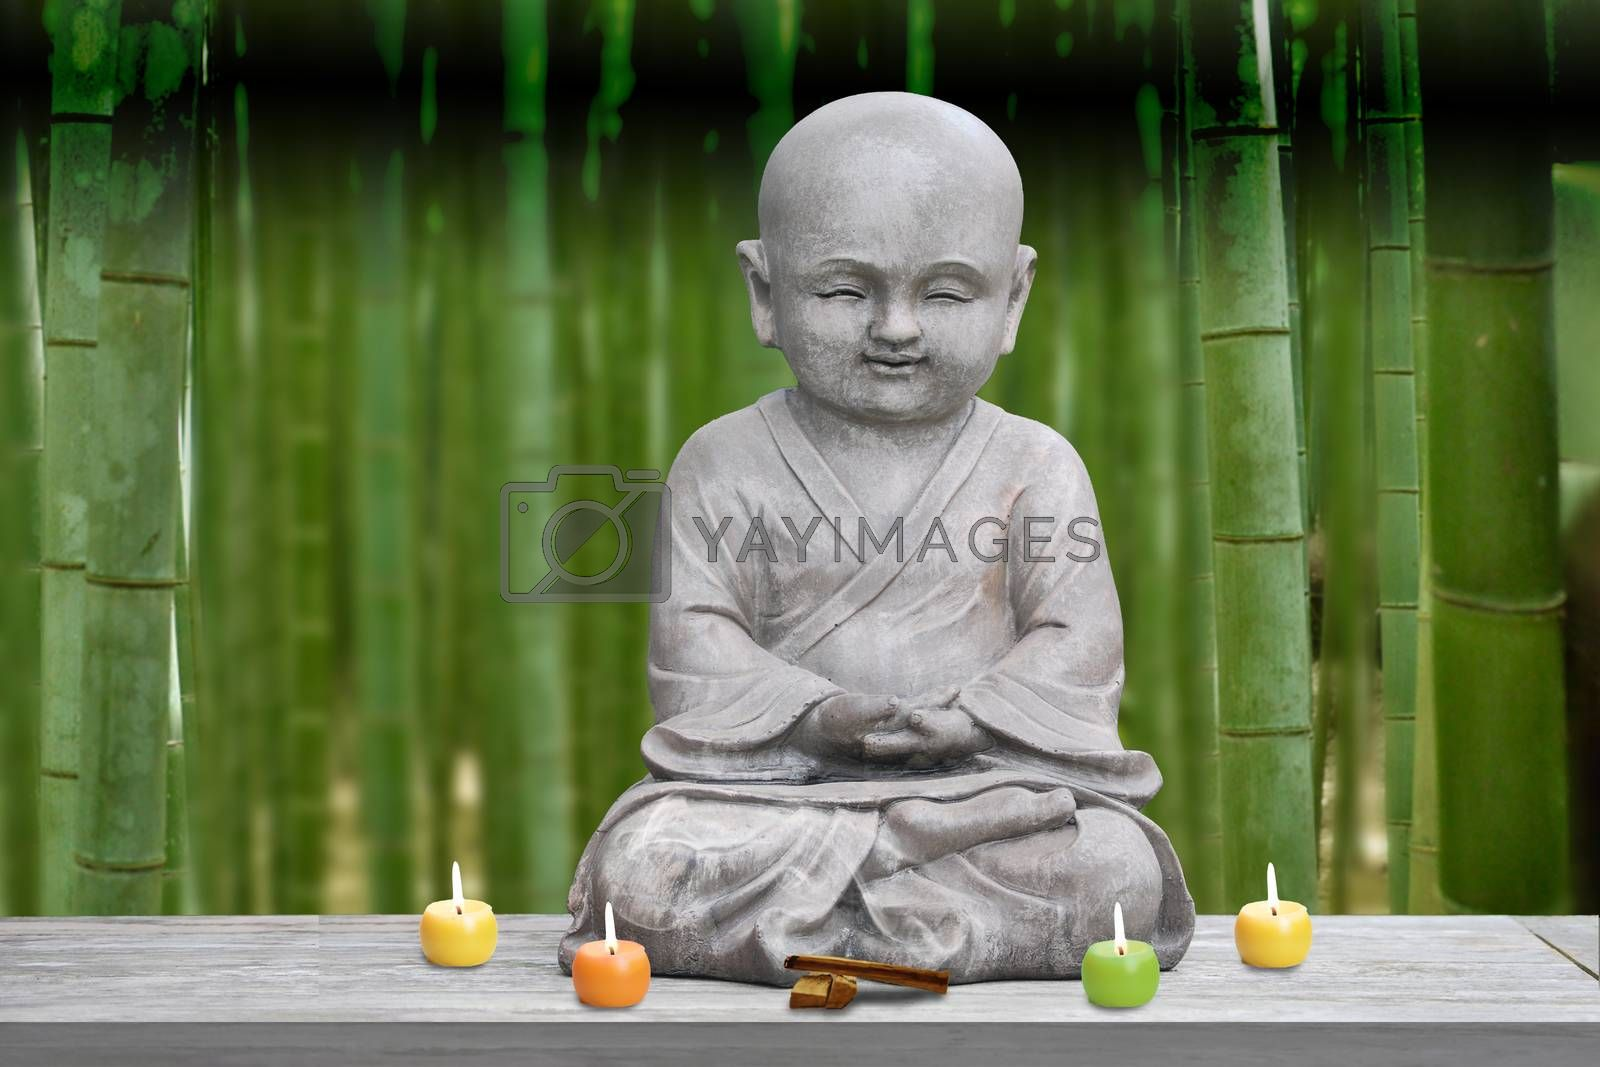 Buddha stone statue child bamboo background blur lit candles and incense